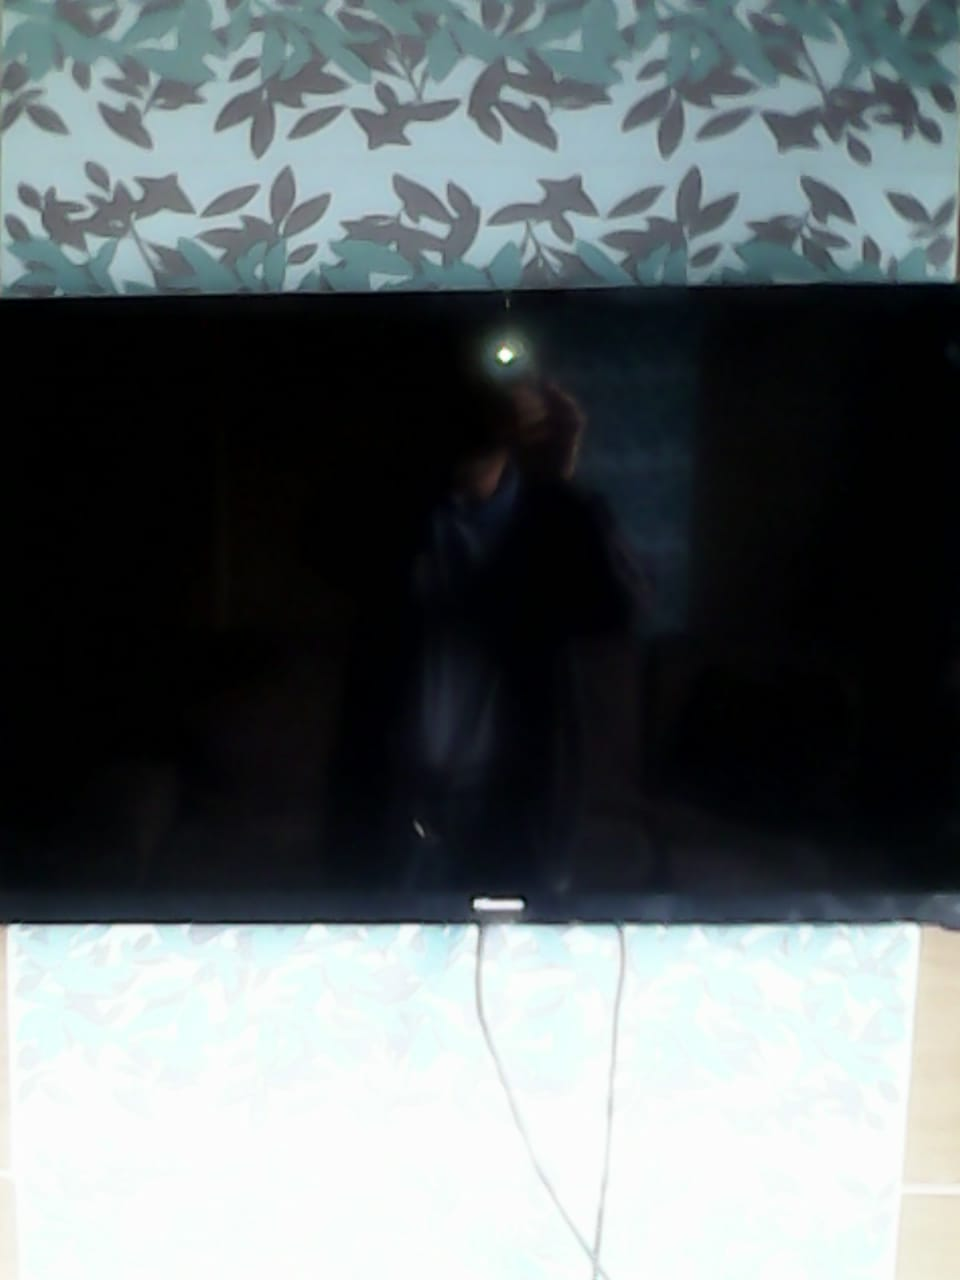 I AM LOOKING FOR A SECOND HAND TV TO BUY FOR CASH